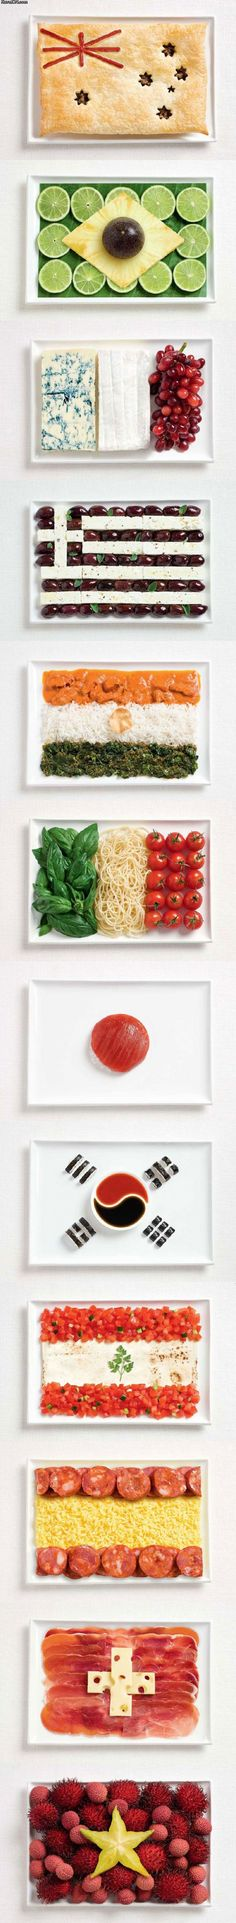 Food Flags using foods of the national cuisine! Amazing!   (Top to bottom: Australia (White Ensign), Brazil, France, Greece, Italy, India, Japan, South Korea, Lebanon, Spain, Switzerland, Vietnam)